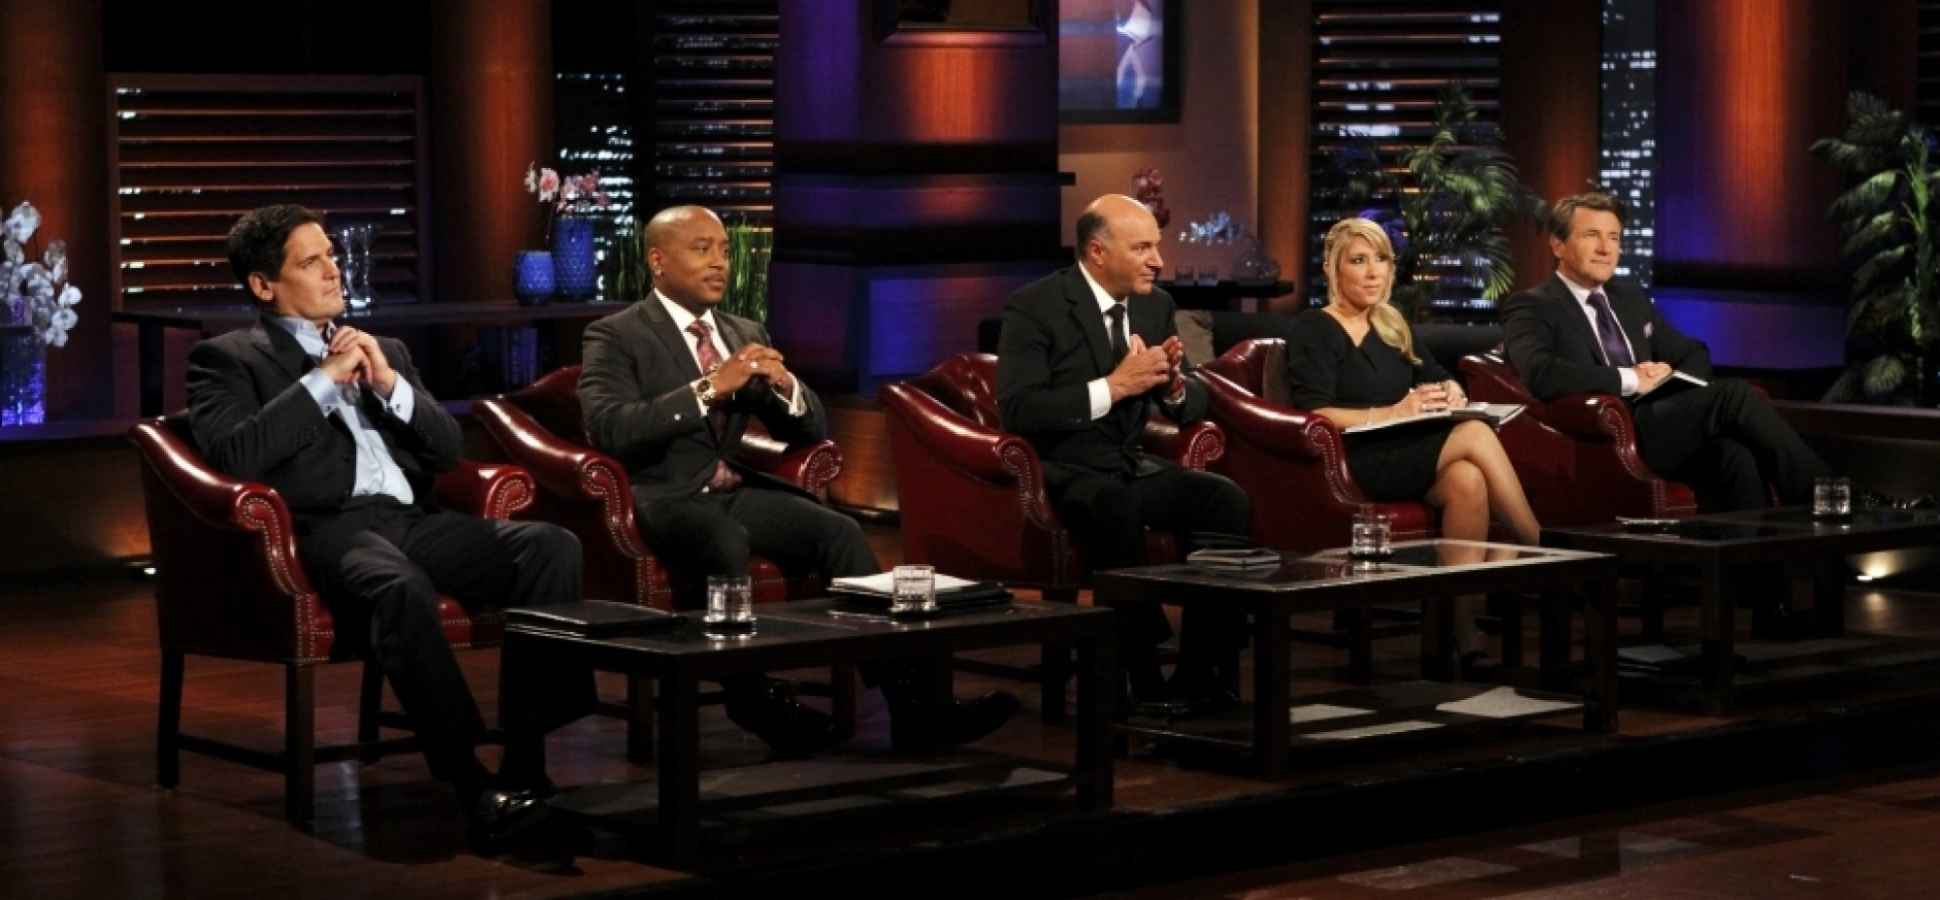 28b6f8d9050 13 Best Shark Tank Episodes of All Time